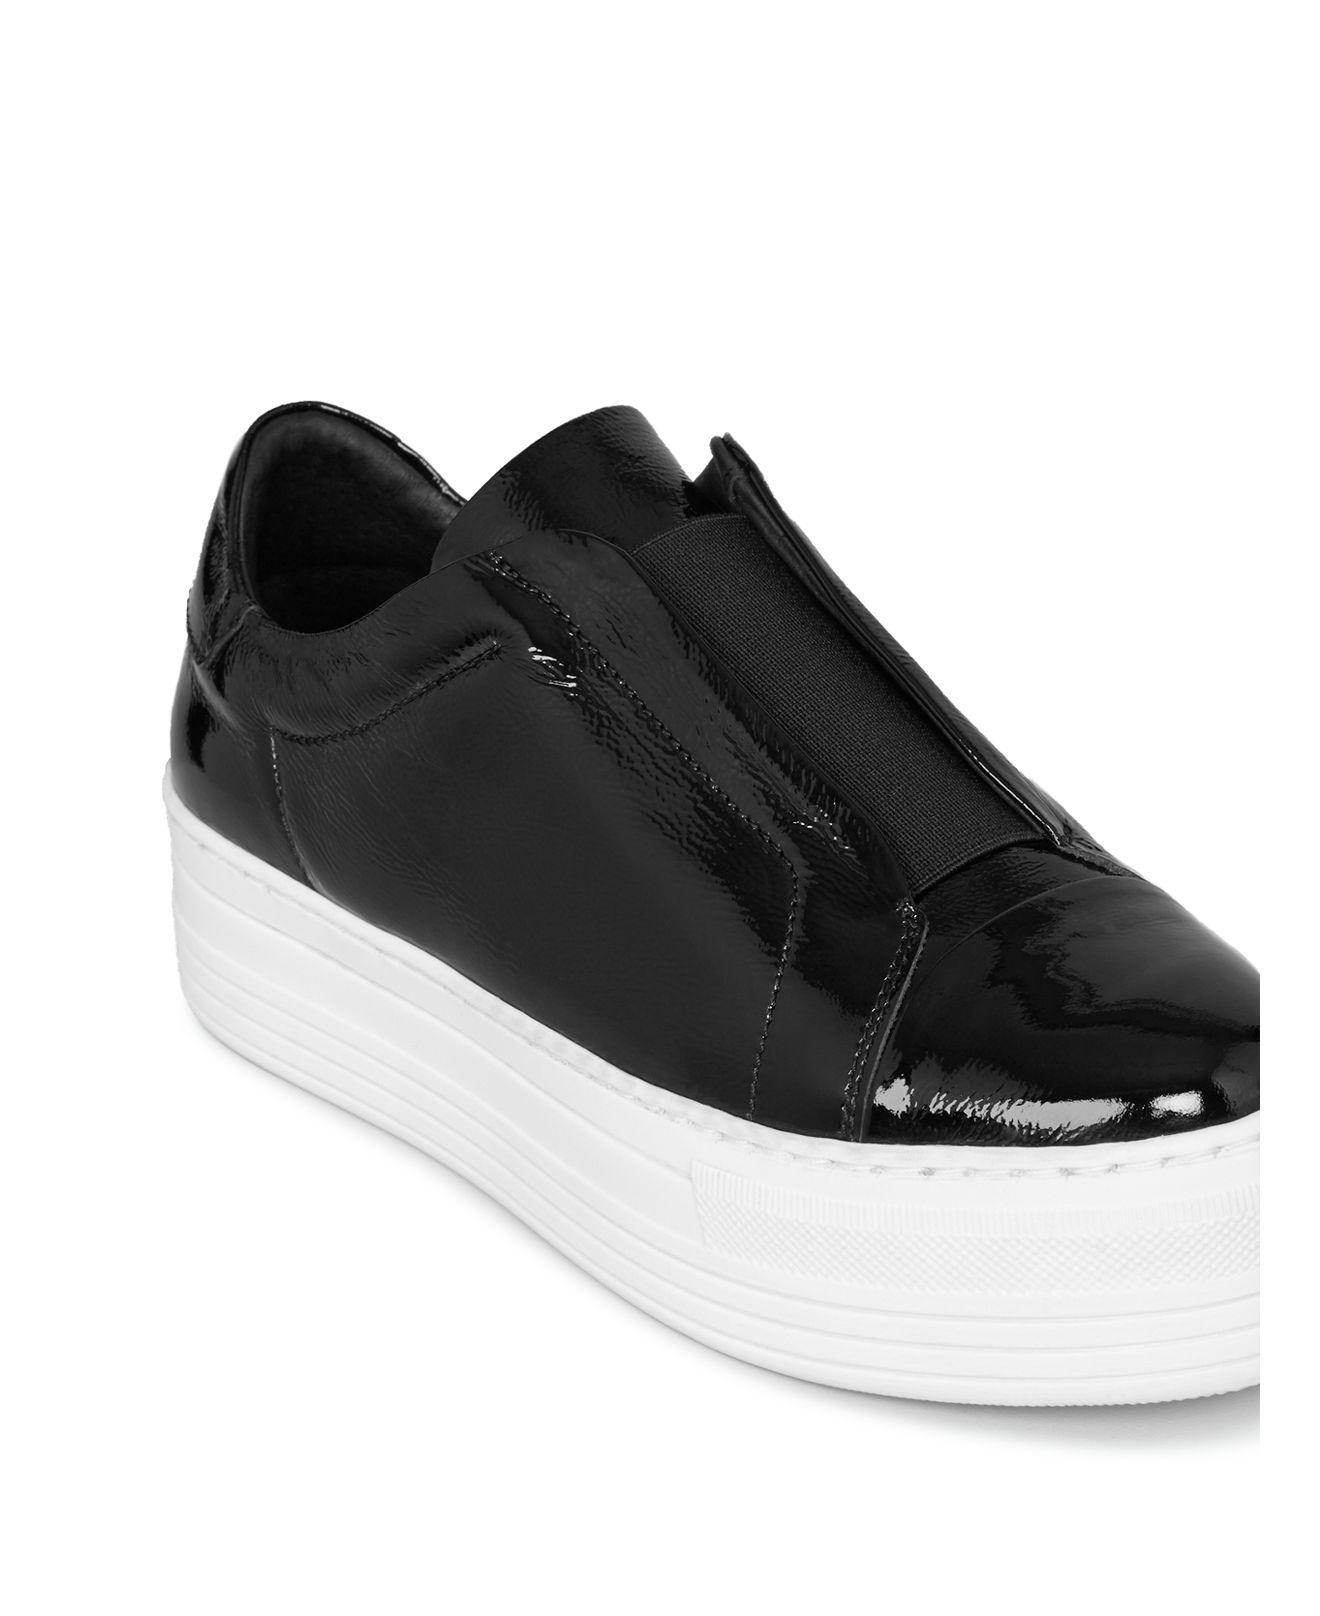 5ffcaa6035a Lyst - AllSaints Women s Aya Patent Leather Platform Slip-on ...